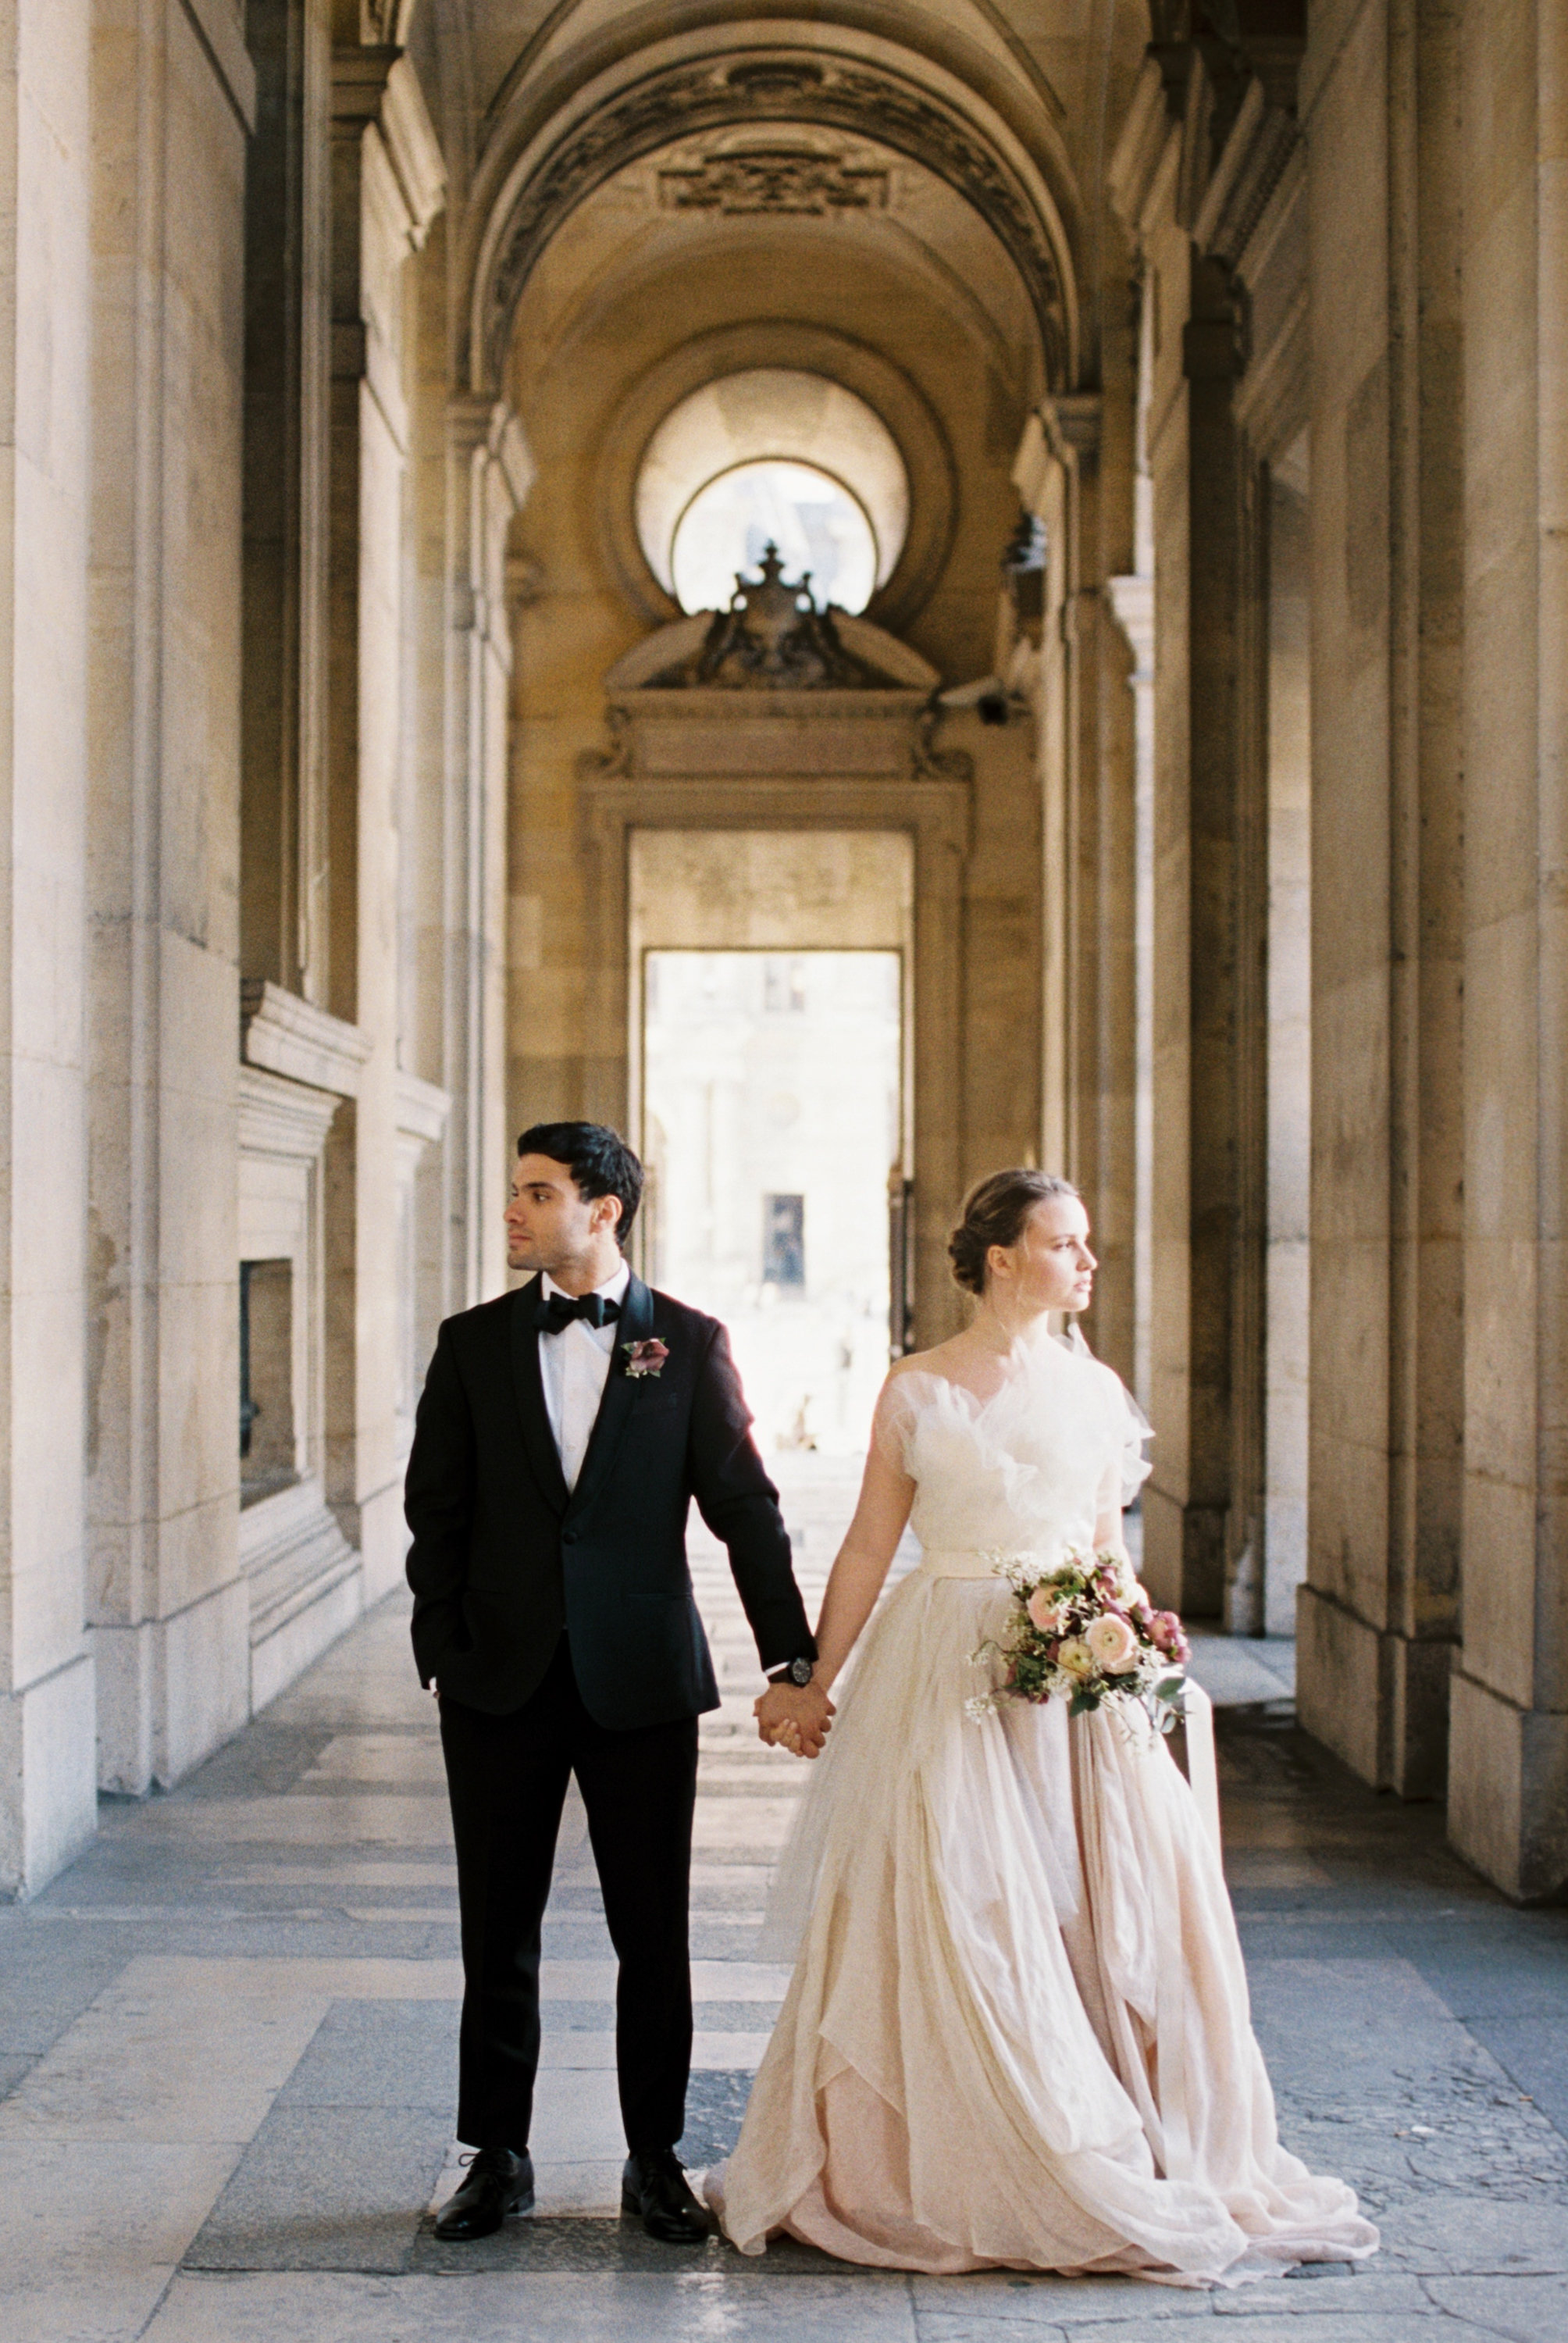 Grand palais wedding gown blush and tulle51.jpg